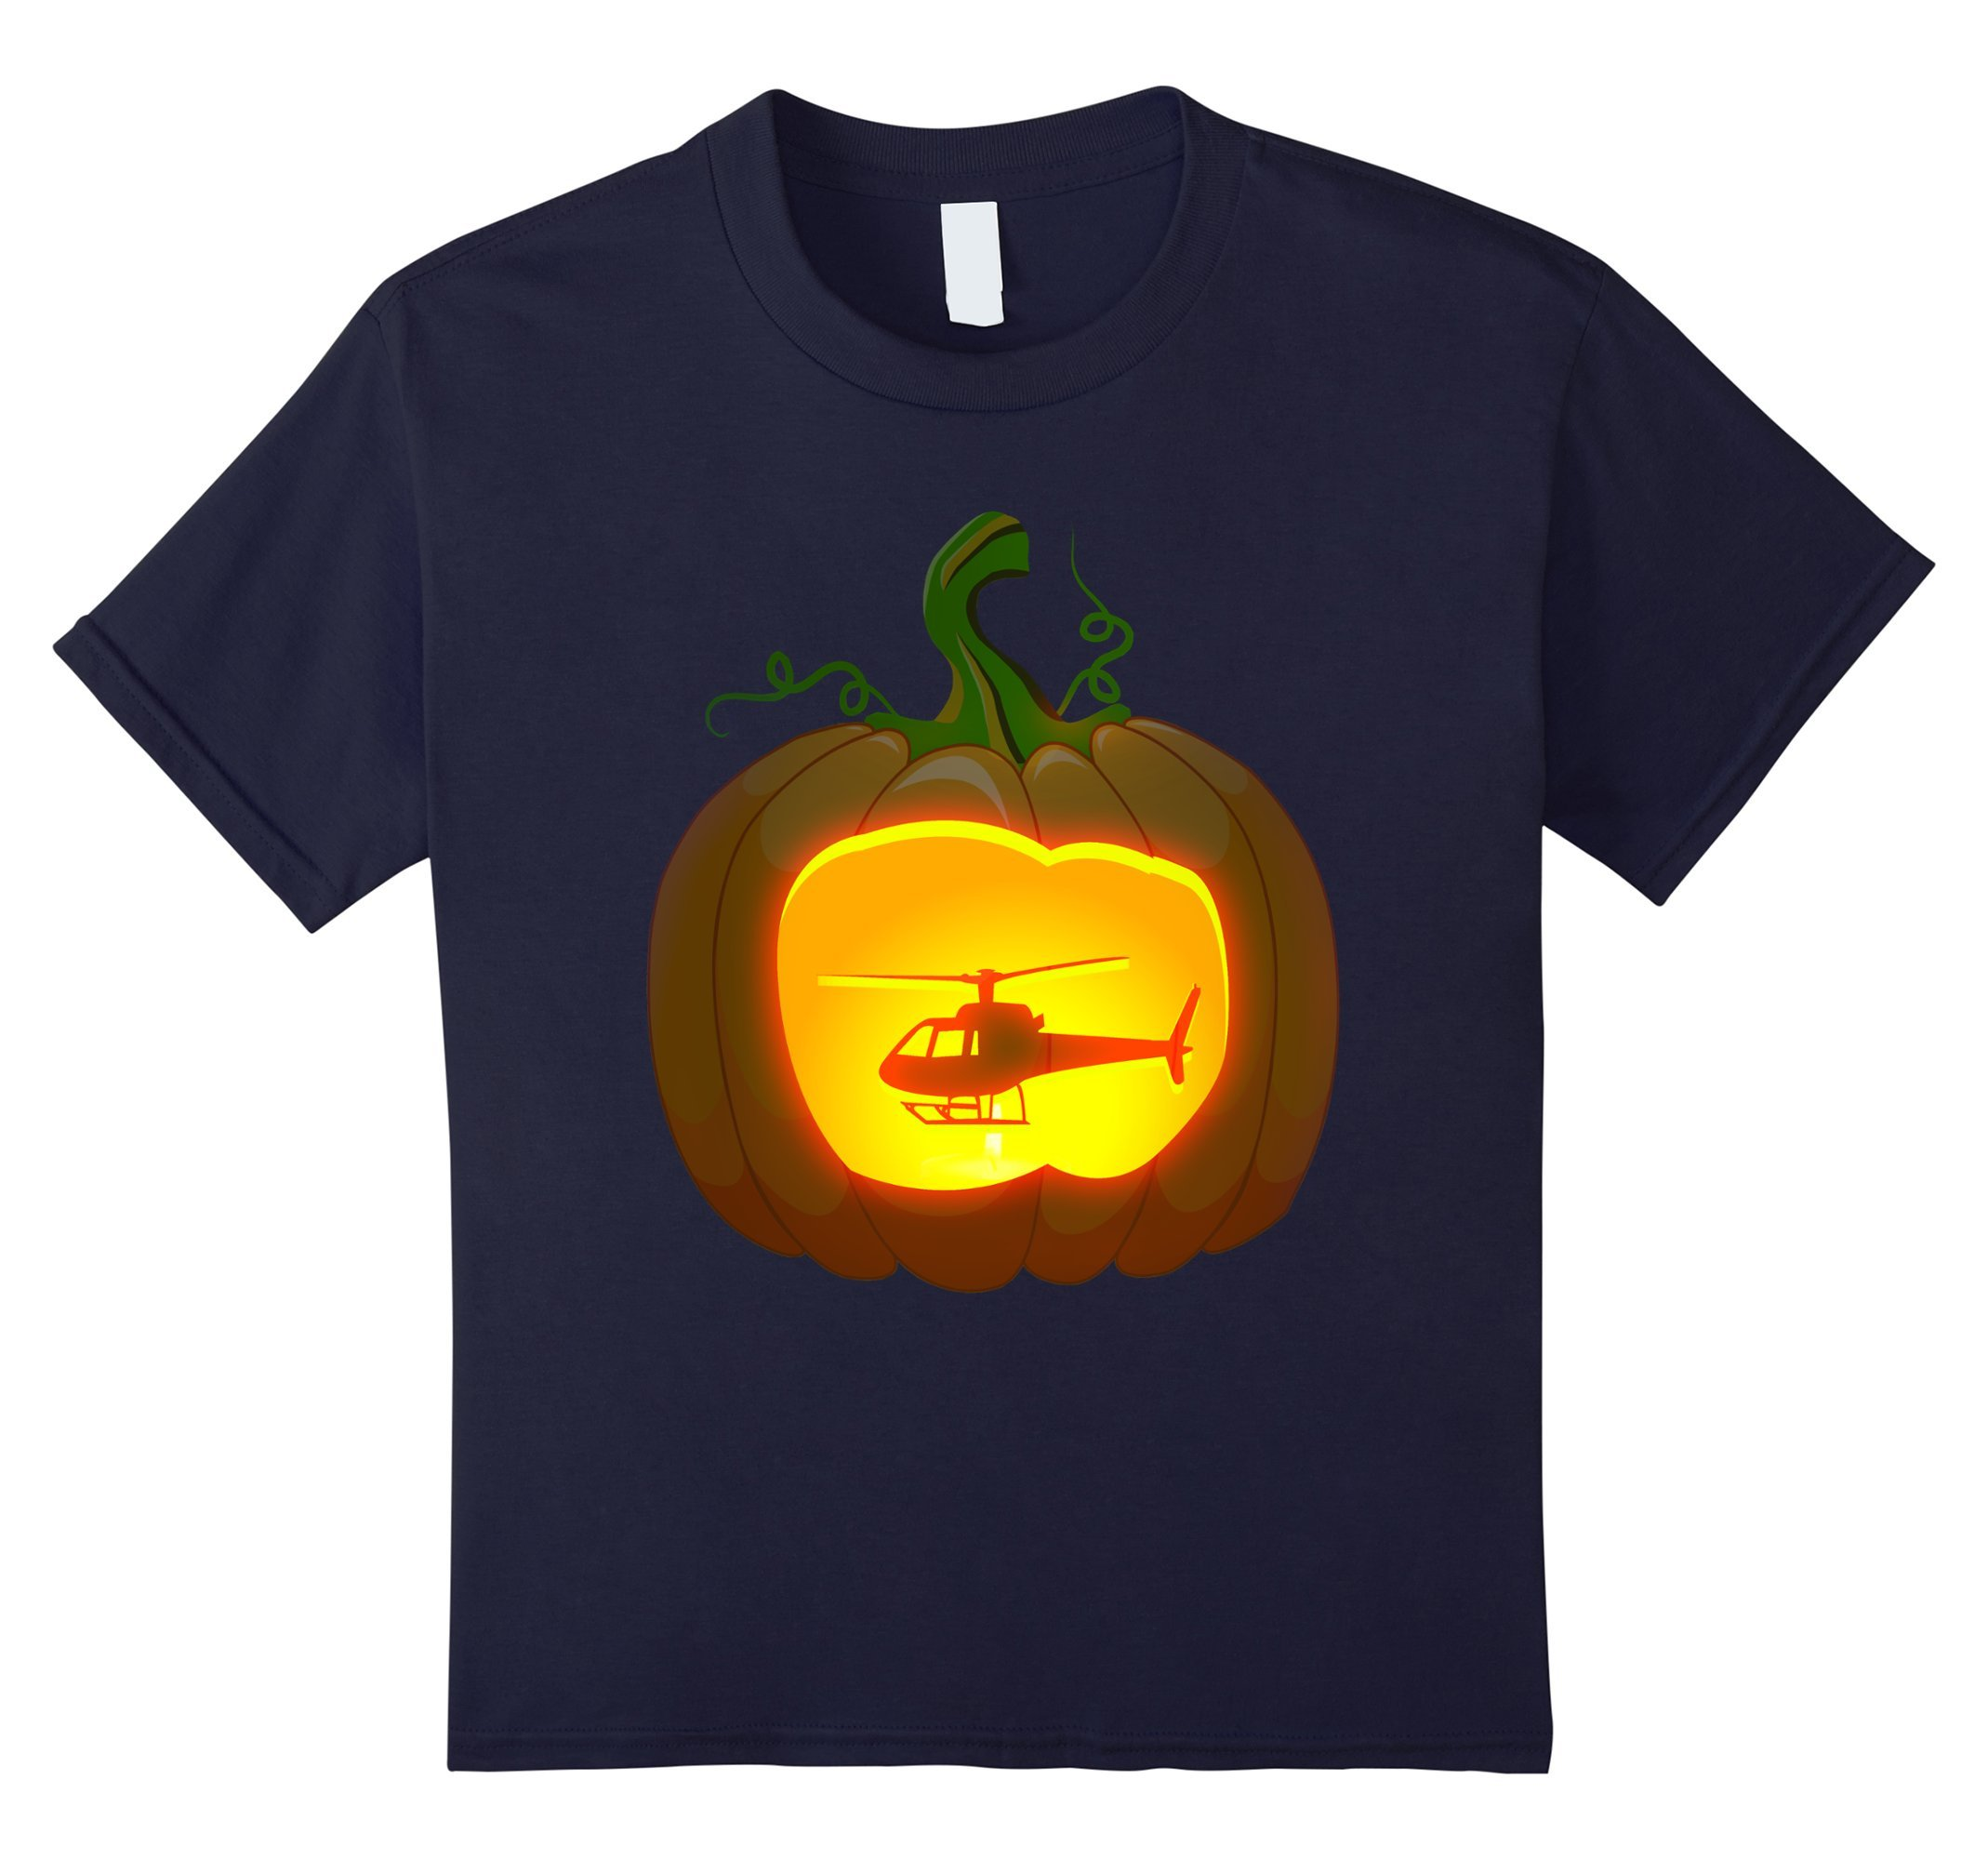 Kids helicopter Pumpkin Halloween shirt 8 Navy